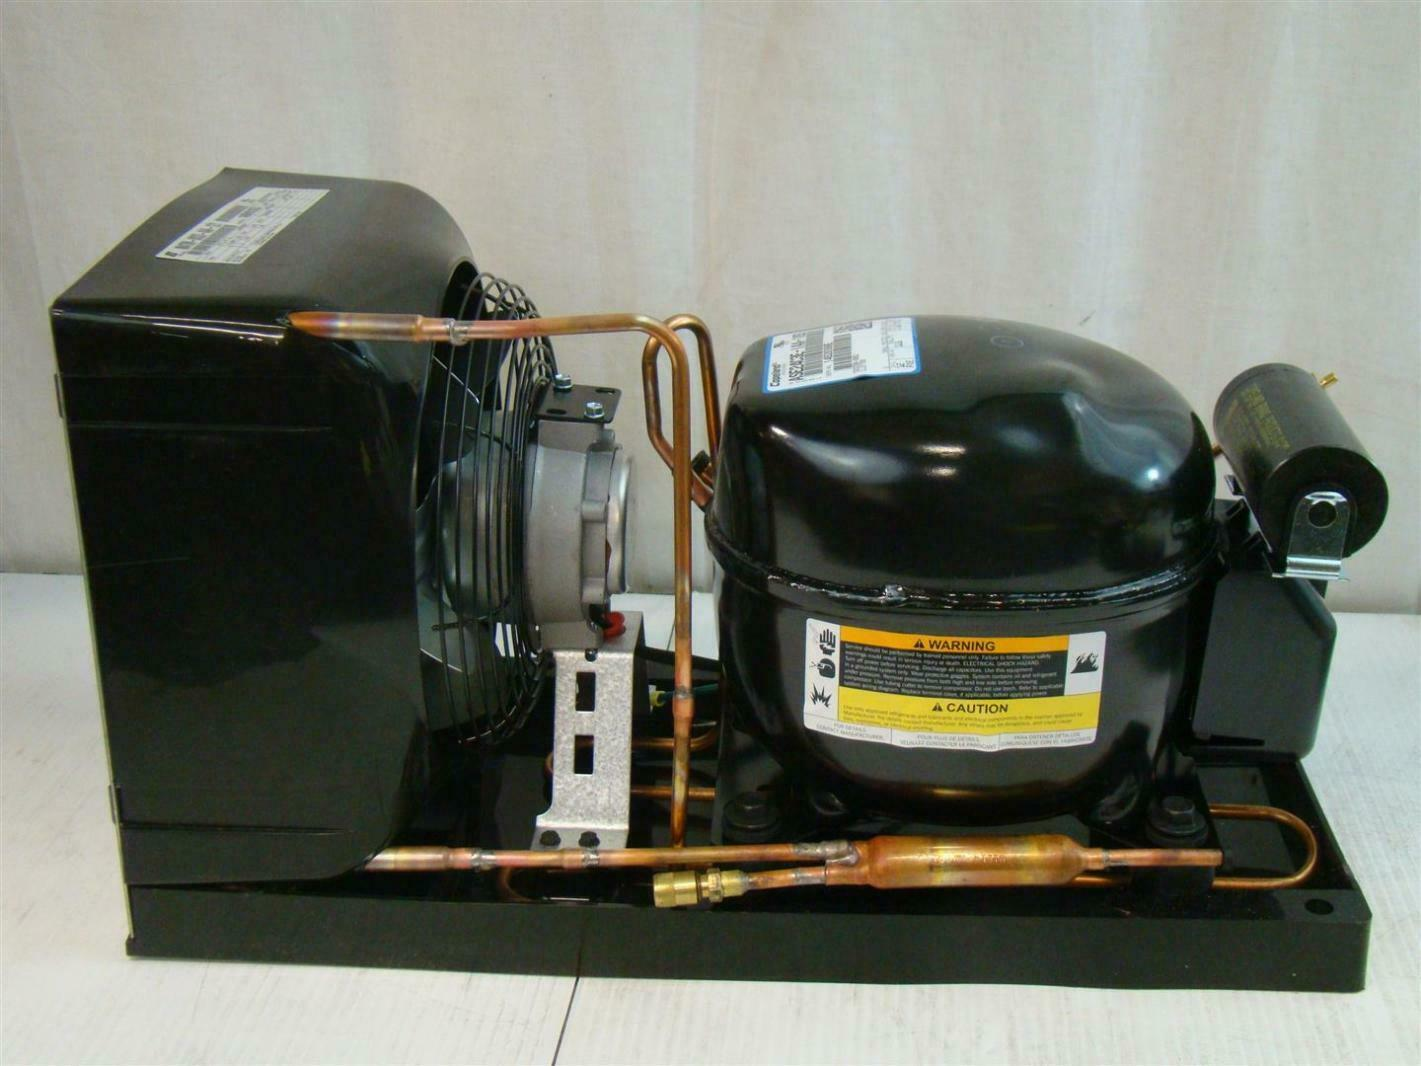 Details about Copeland Hermetic Condensing Unit 1/3HP 115v M4TM 0033  #A69625